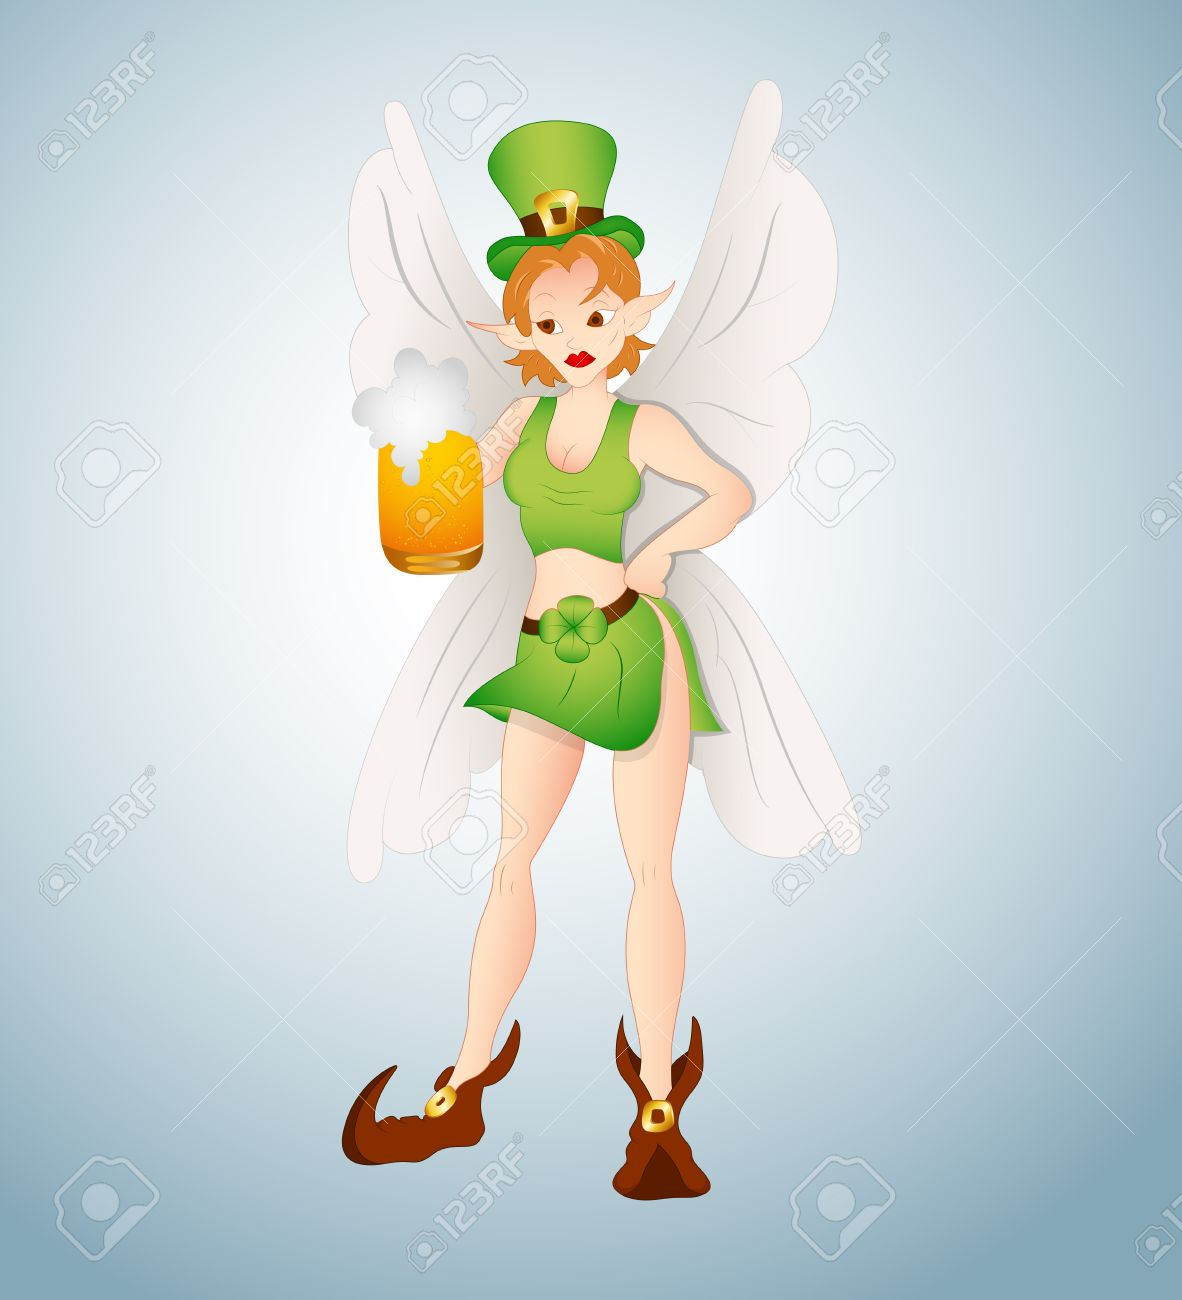 8 932 fairy costume cliparts stock vector and royalty free fairy